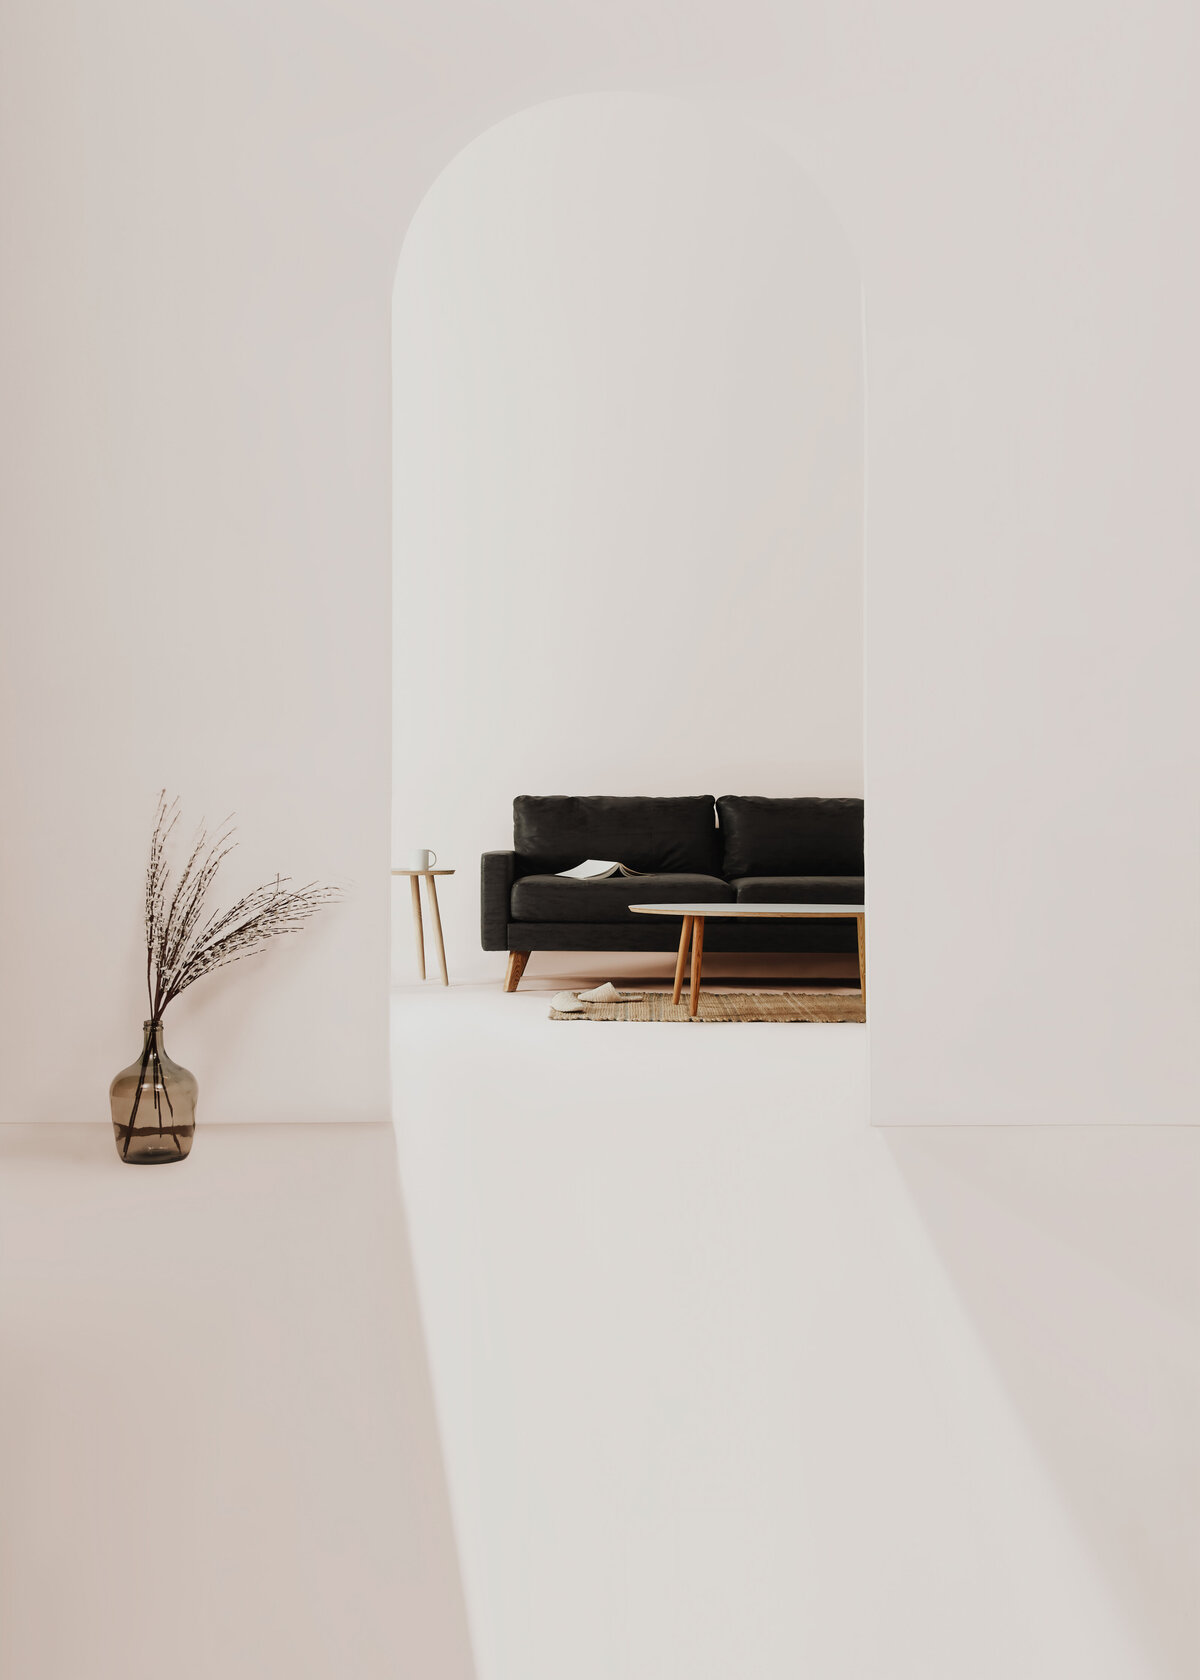 A charcoal grey sofa is in the background of a minimal white room with a sleek archway entrance.